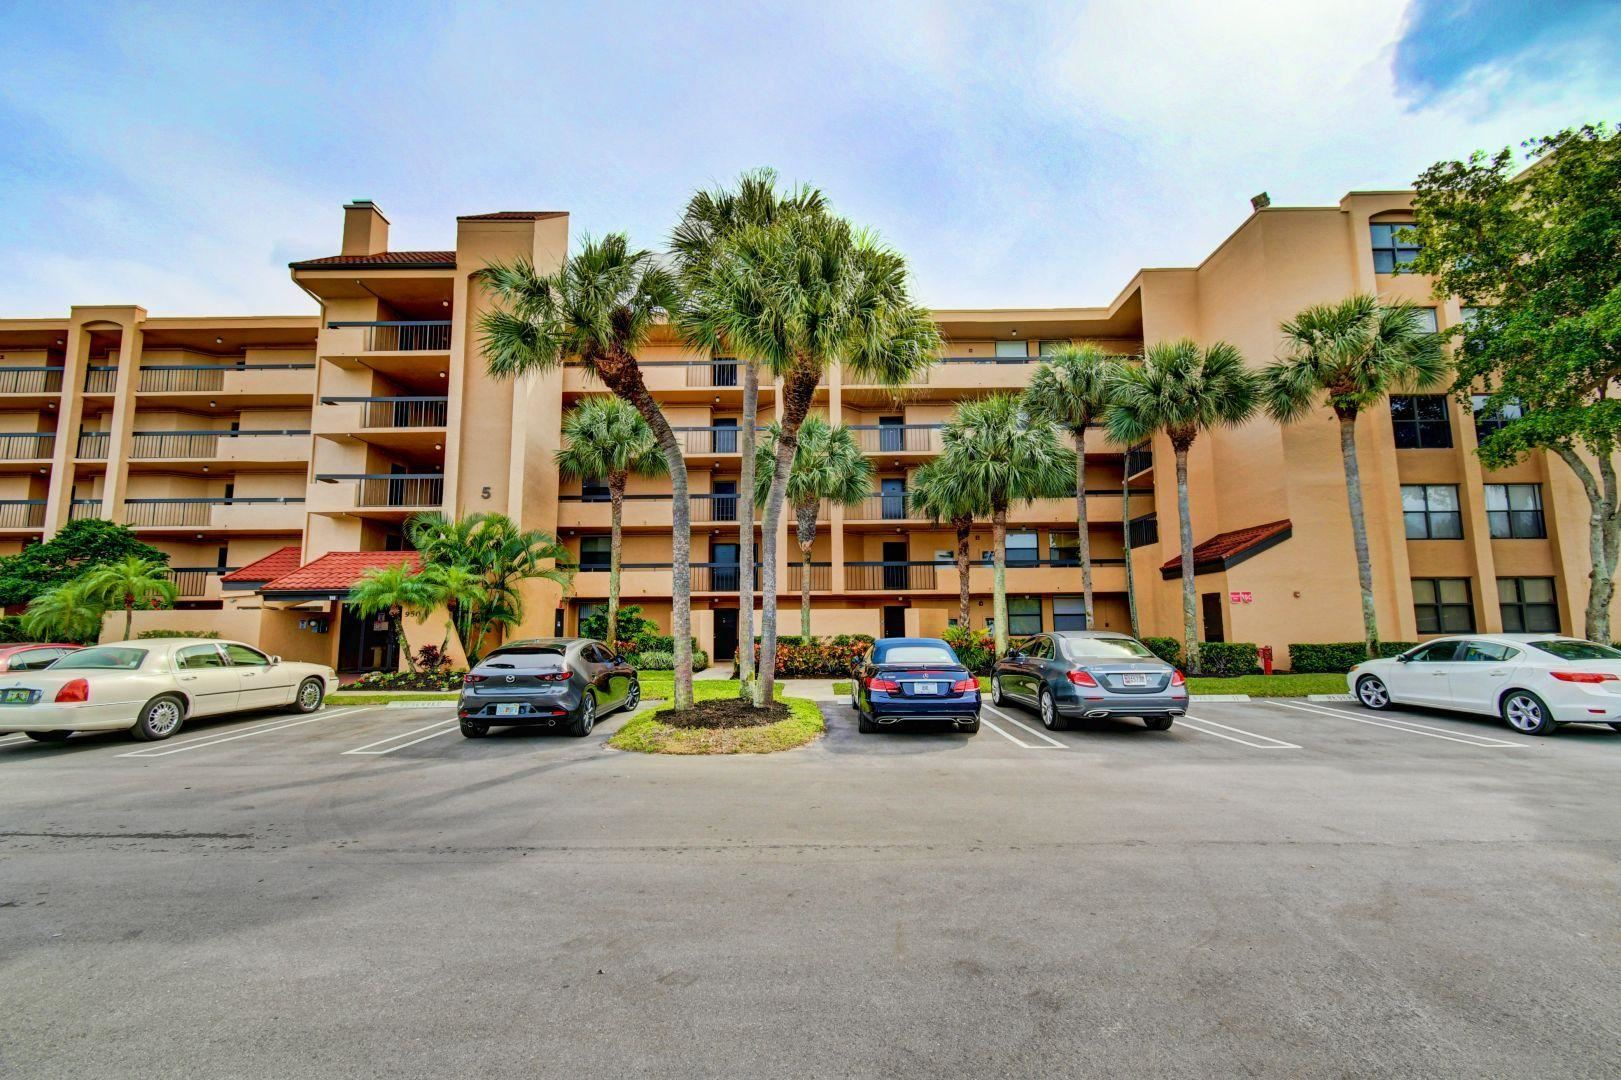 Photo of 950 Egret Circle #5408, Delray Beach, FL 33444 (MLS # RX-10685499)